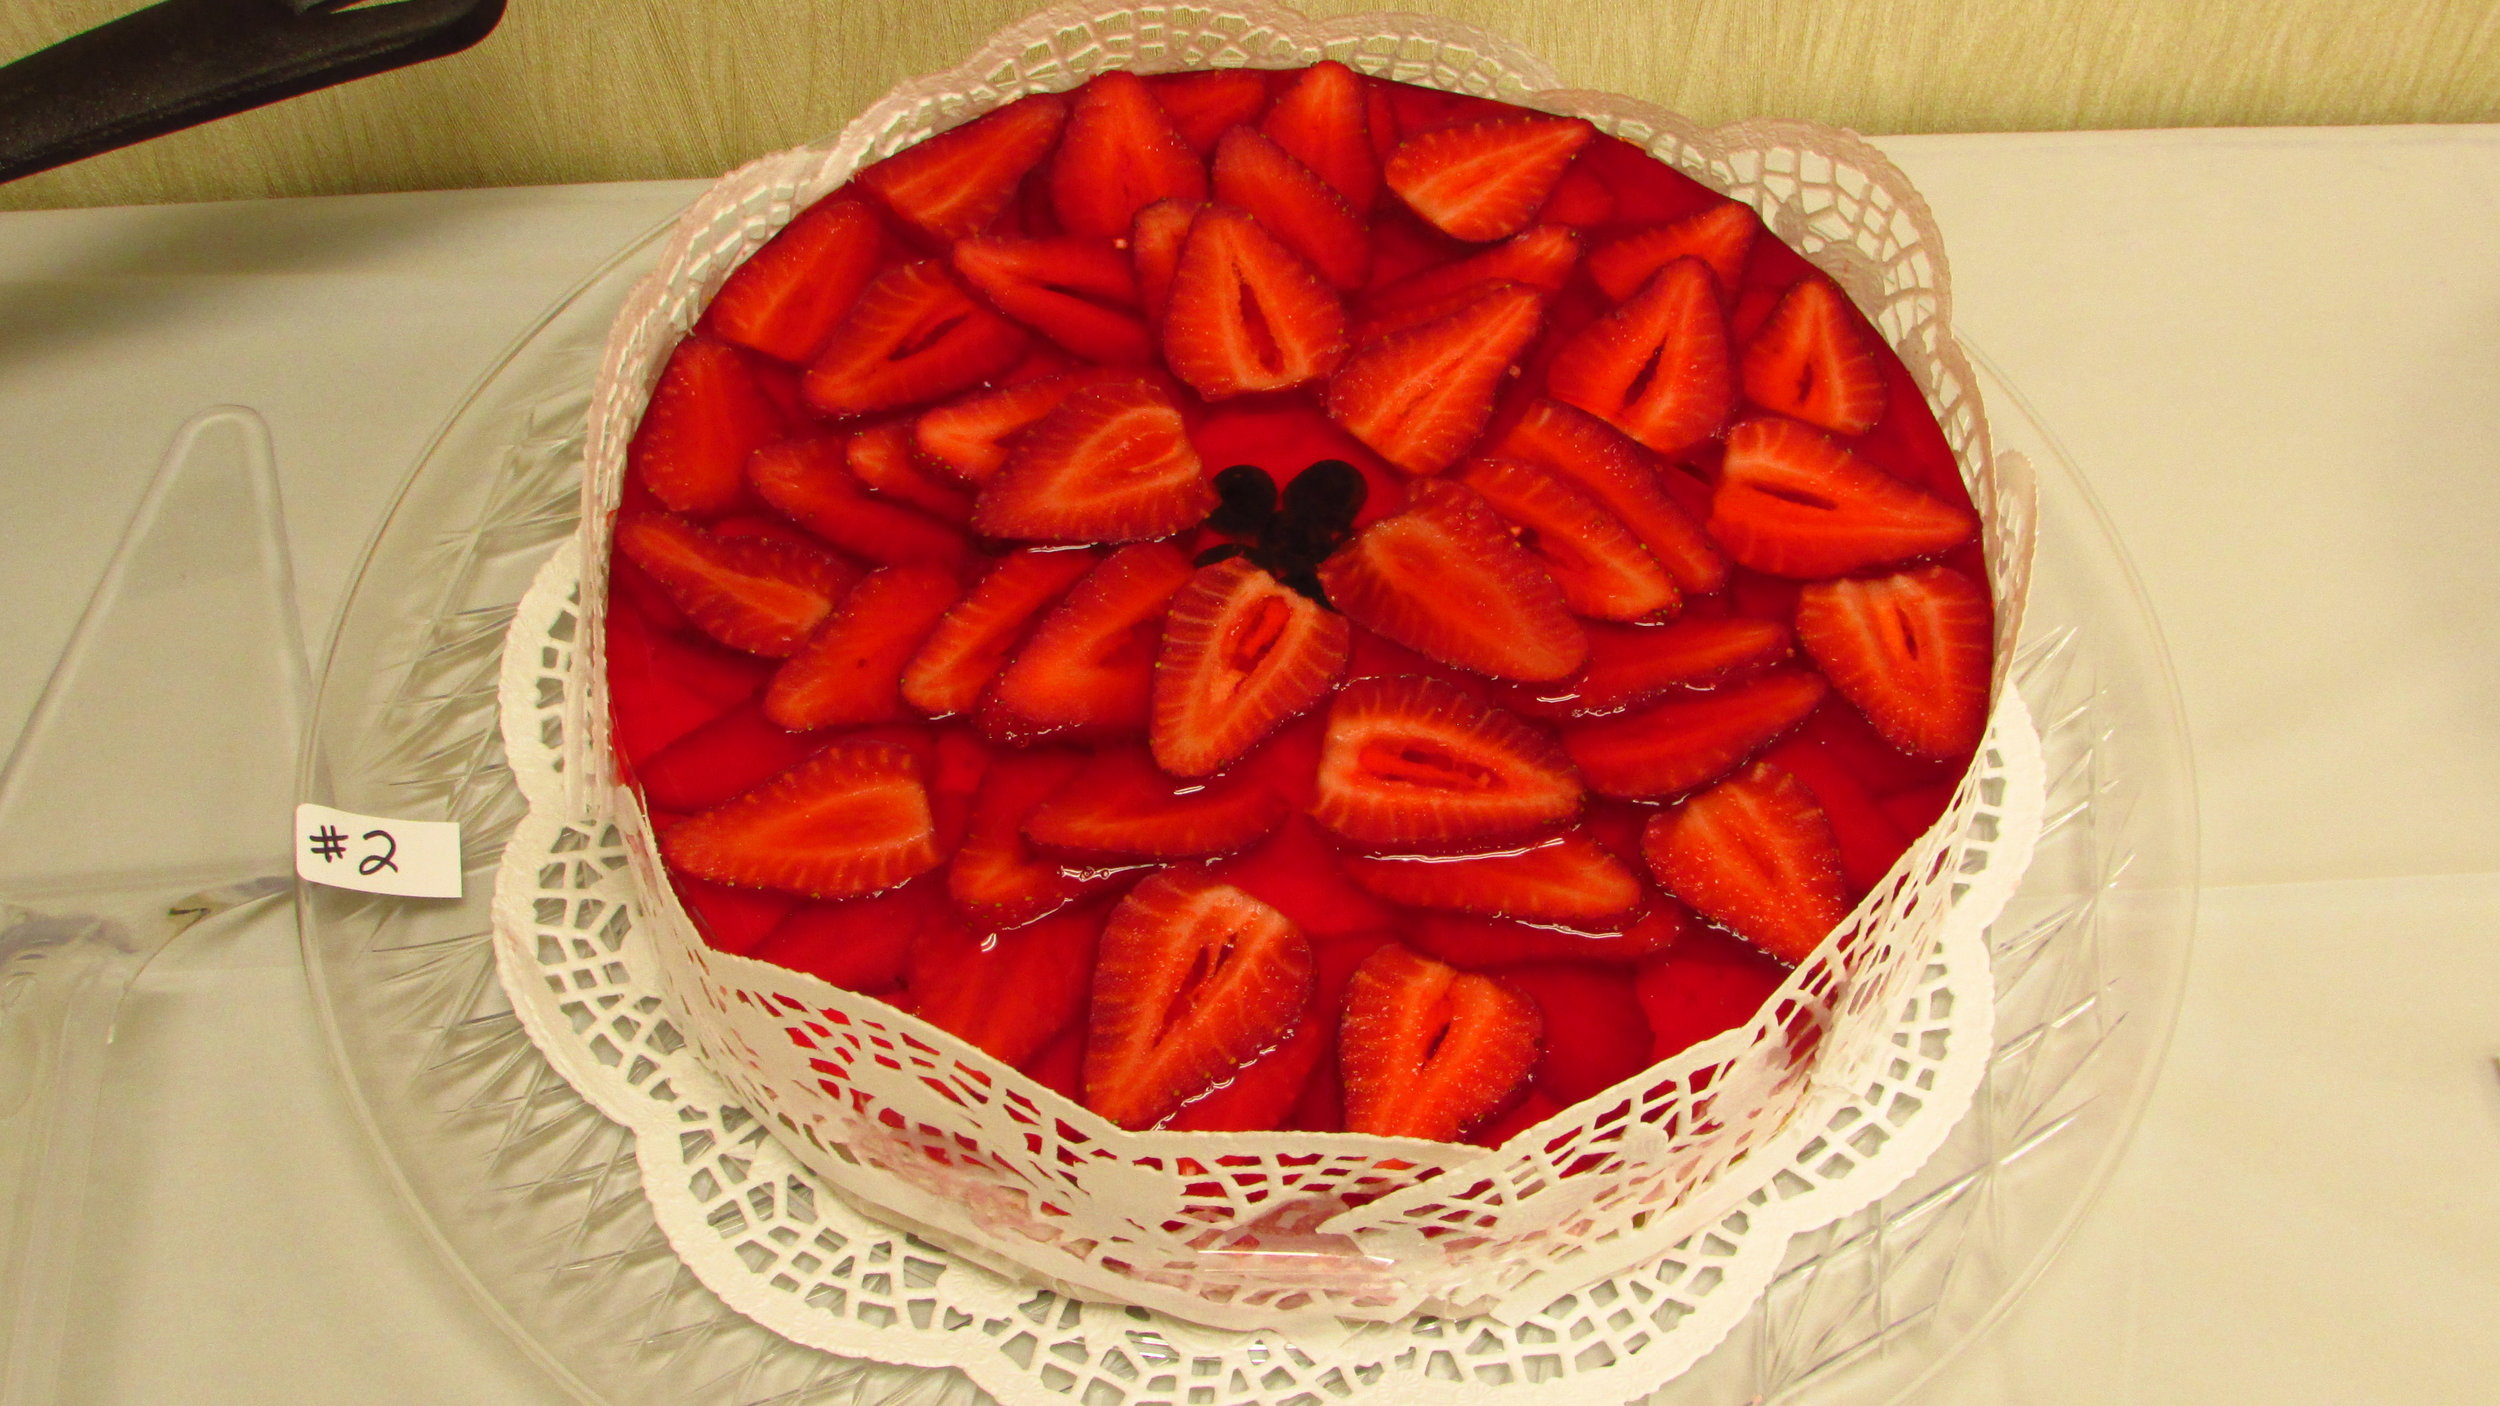 Strawberry Mousse Cake, courtesy of The North Carolina Department of Agriculture & Consumer Services